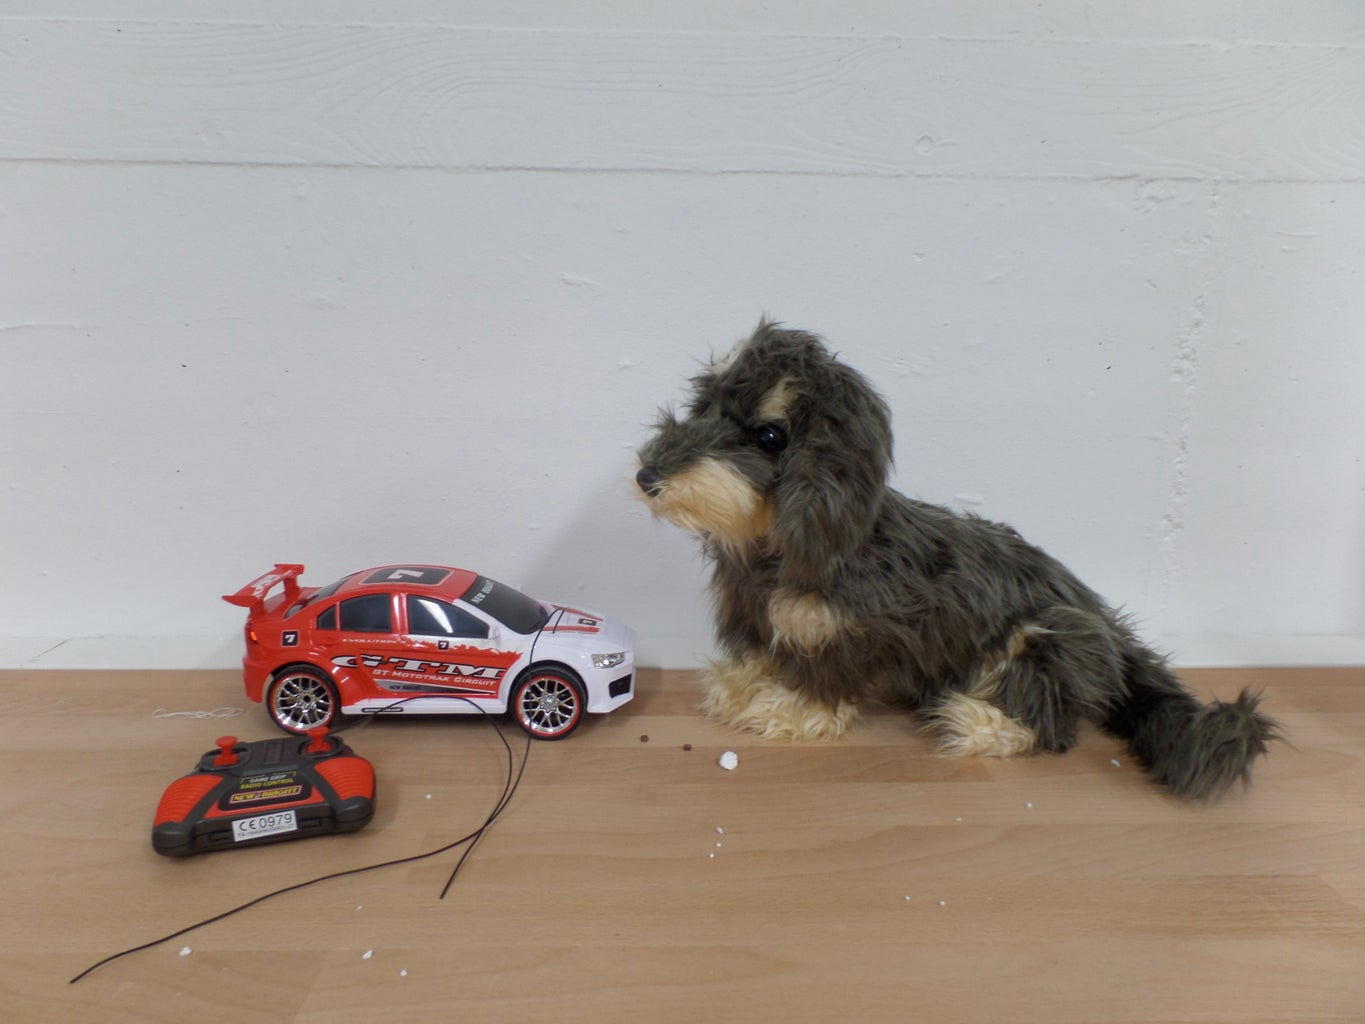 Toto, the Remote Controlled Dog